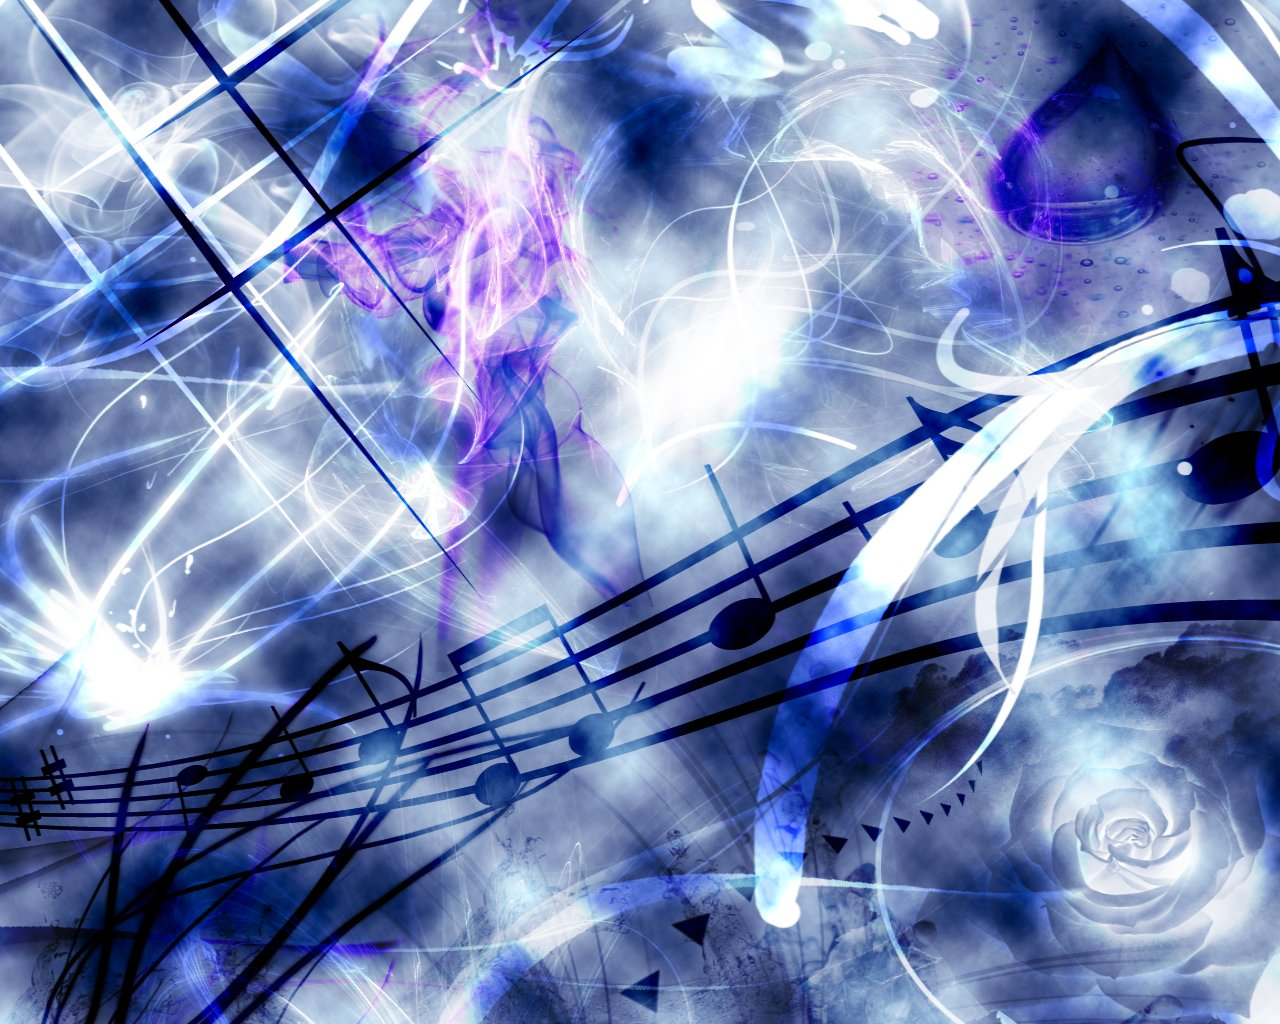 Music Abstract Wallpaper 1280x1024 Music Abstract 1280x1024